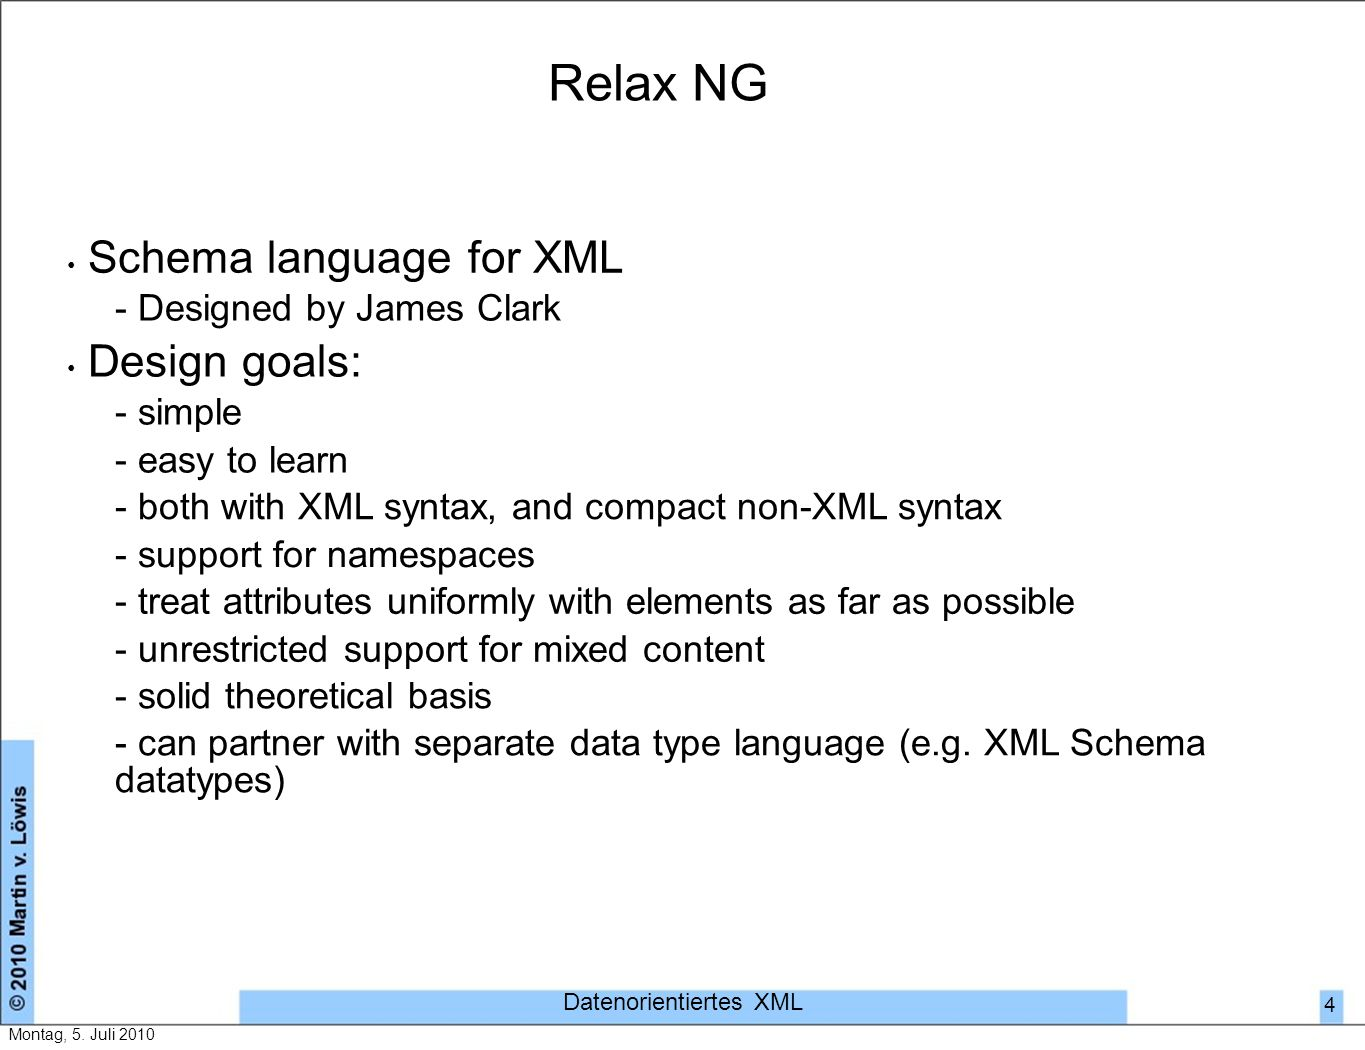 Relax NG Schema language for XML - Designed by James Clark Design goals: - simple - easy to learn - both with XML syntax, and compact non-XML syntax - support for namespaces - treat attributes uniformly with elements as far as possible - unrestricted support for mixed content - solid theoretical basis - can partner with separate data type language (e.g.